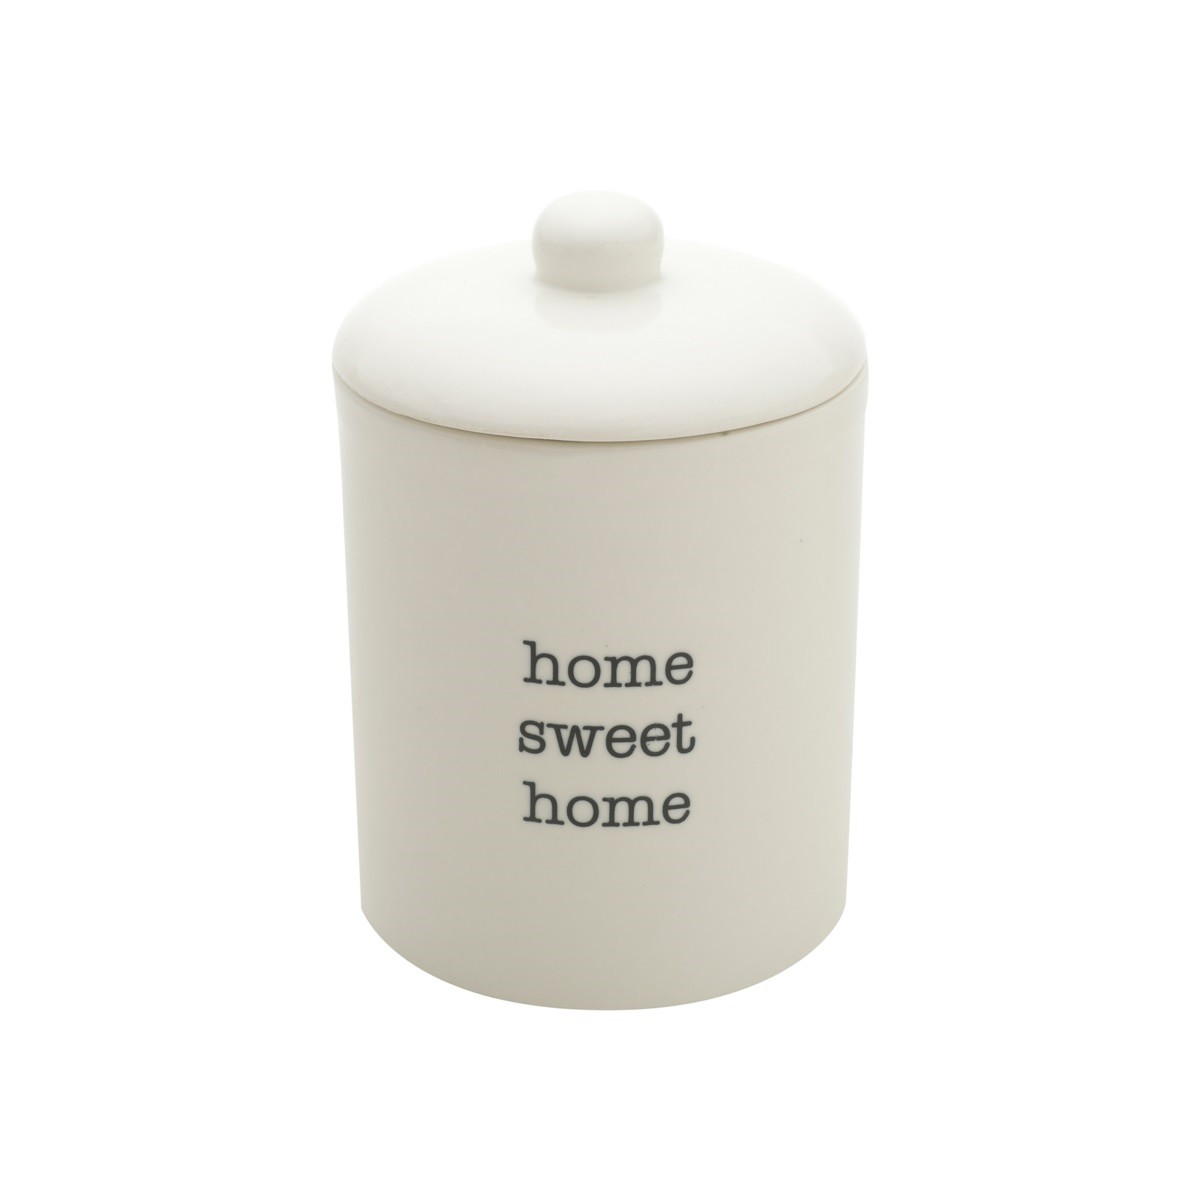 Porta-treco Porcelana 16cm Branco Home Sweet Home - Urban Decor